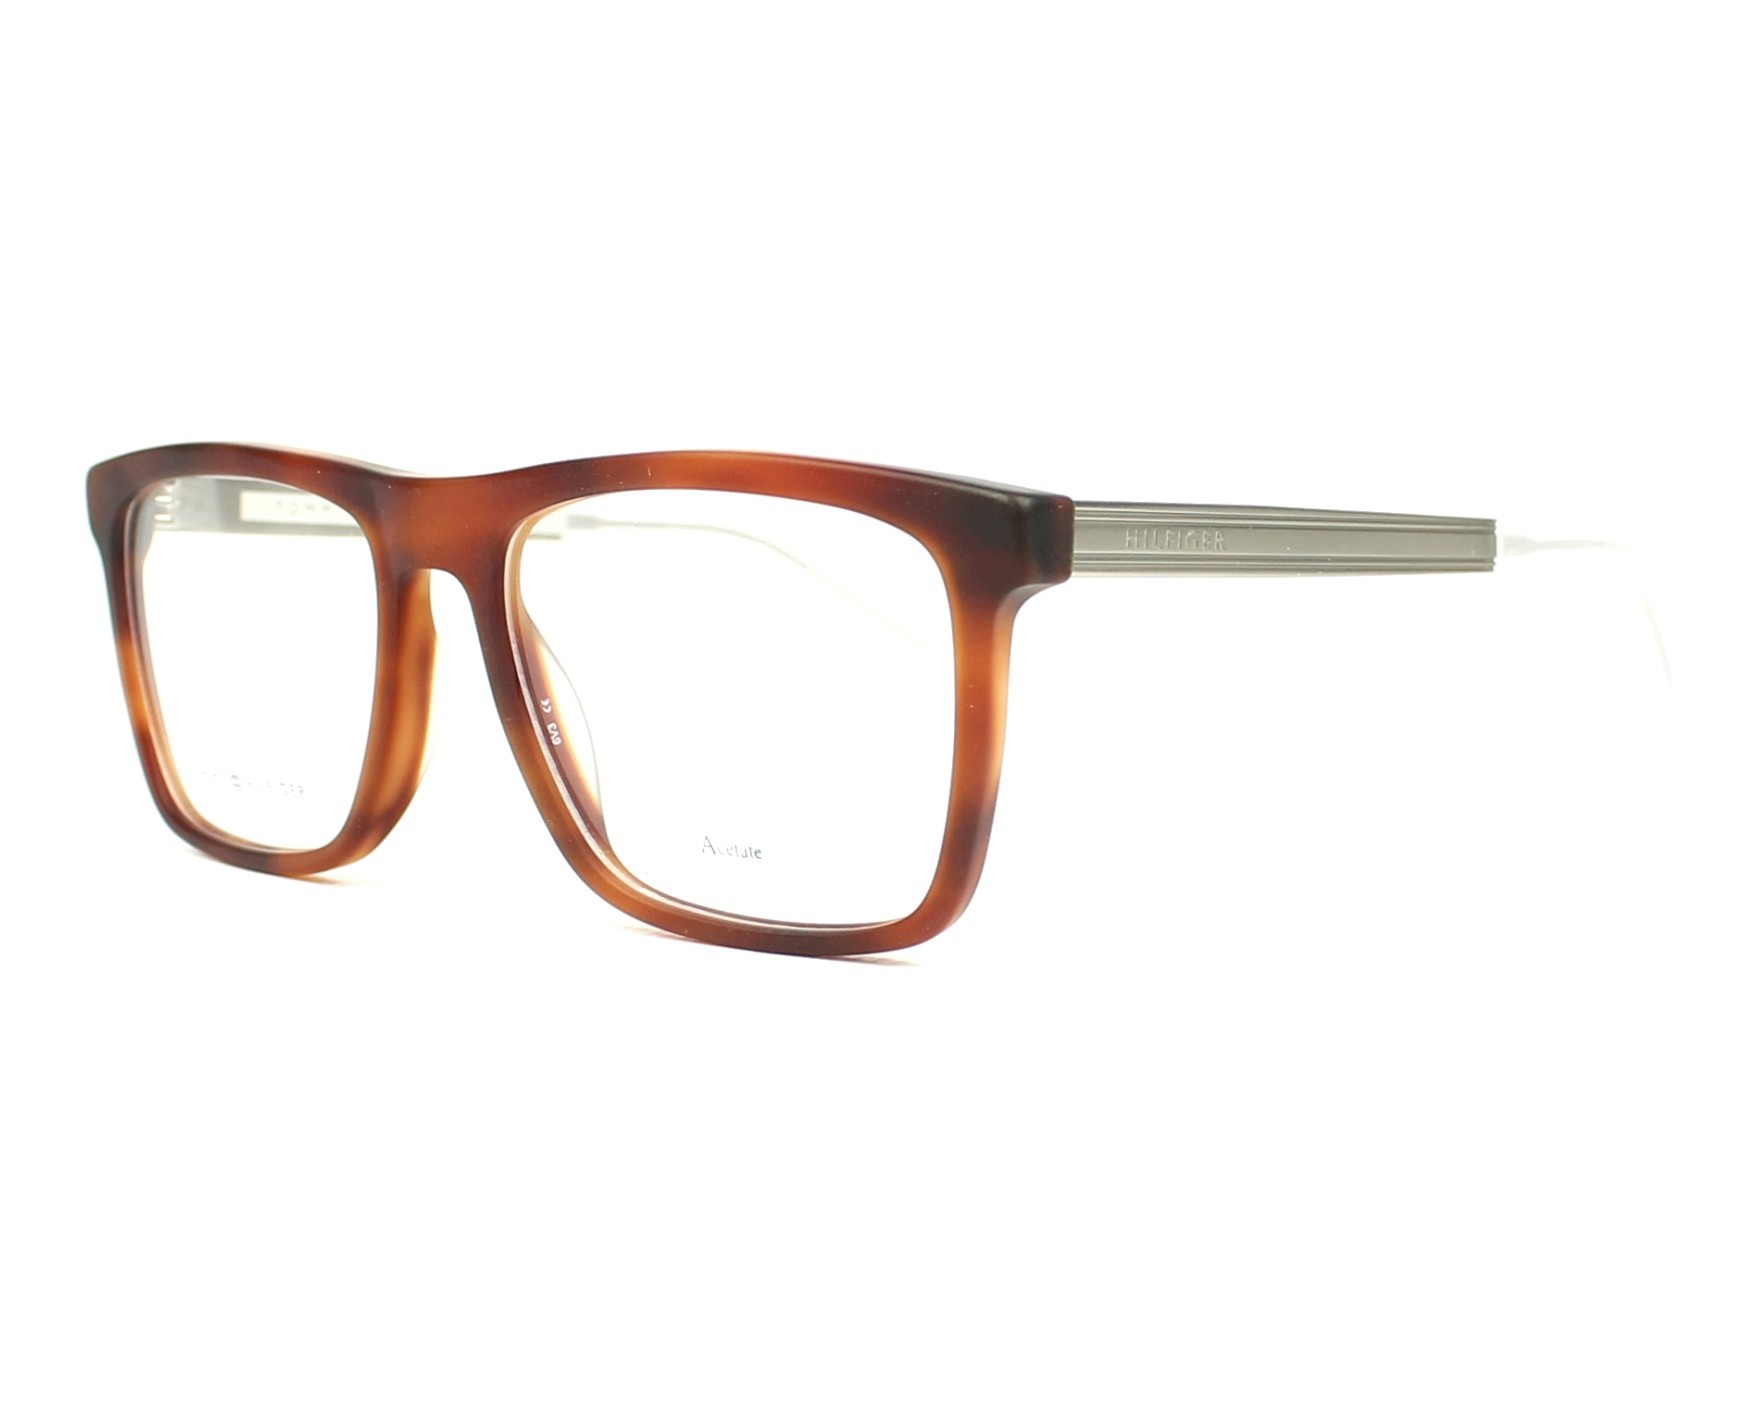 eyeglasses Tommy Hilfiger TH-1436 HBN - Havana Palladium profile view 2cce35a3e3